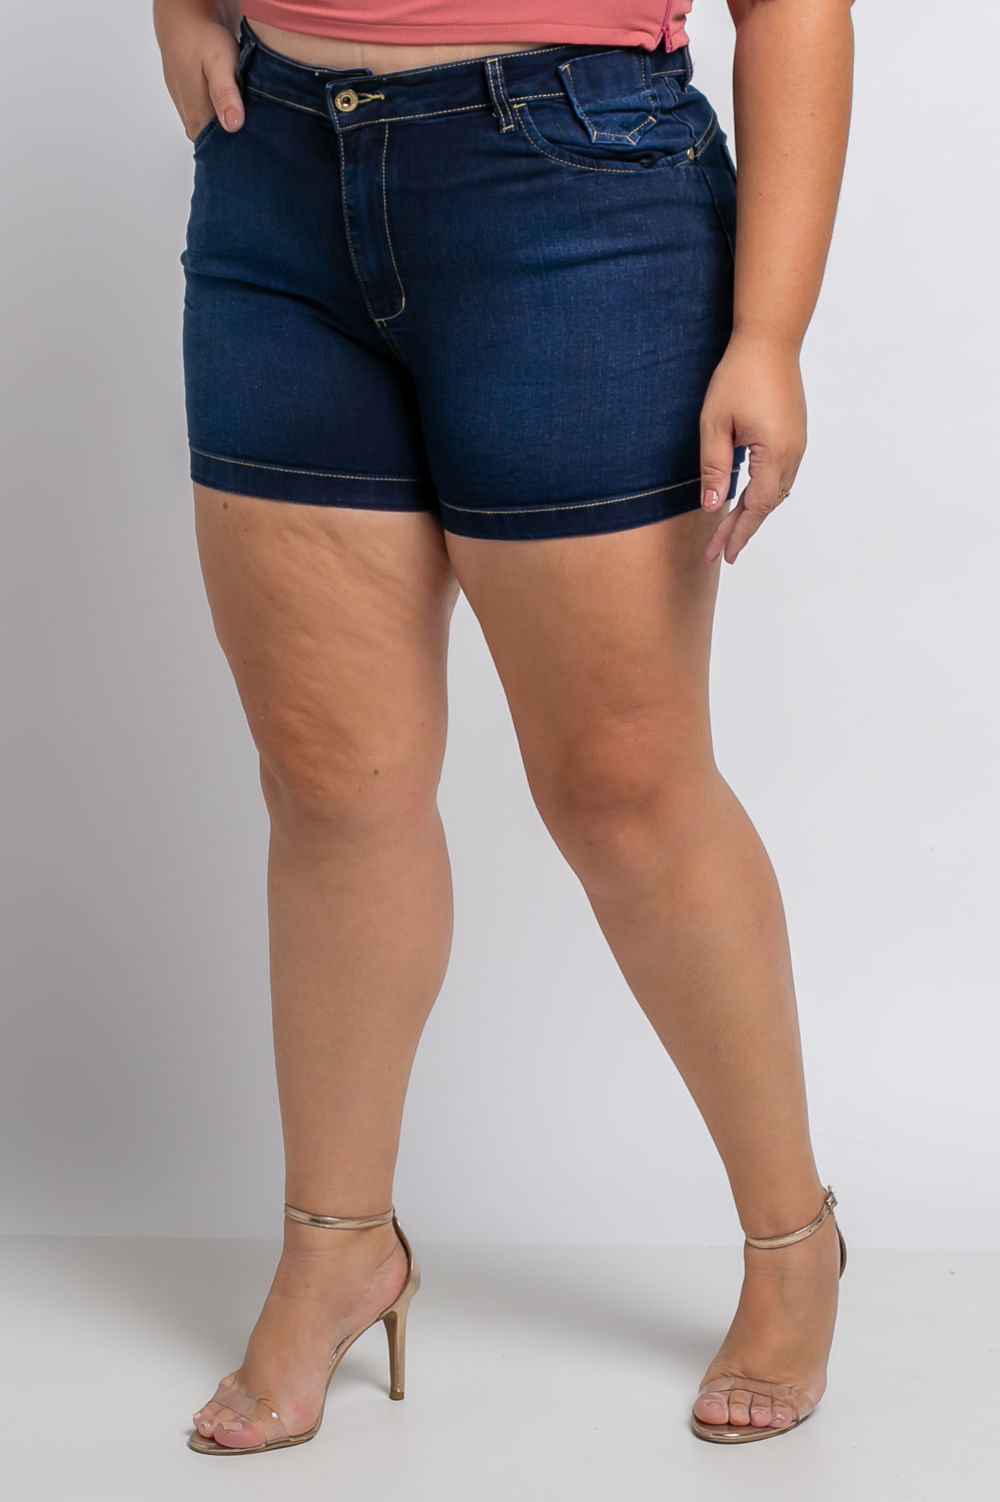 SHY35593_Shorts_Liso_Plus_Size_Jeans_AZUL_4